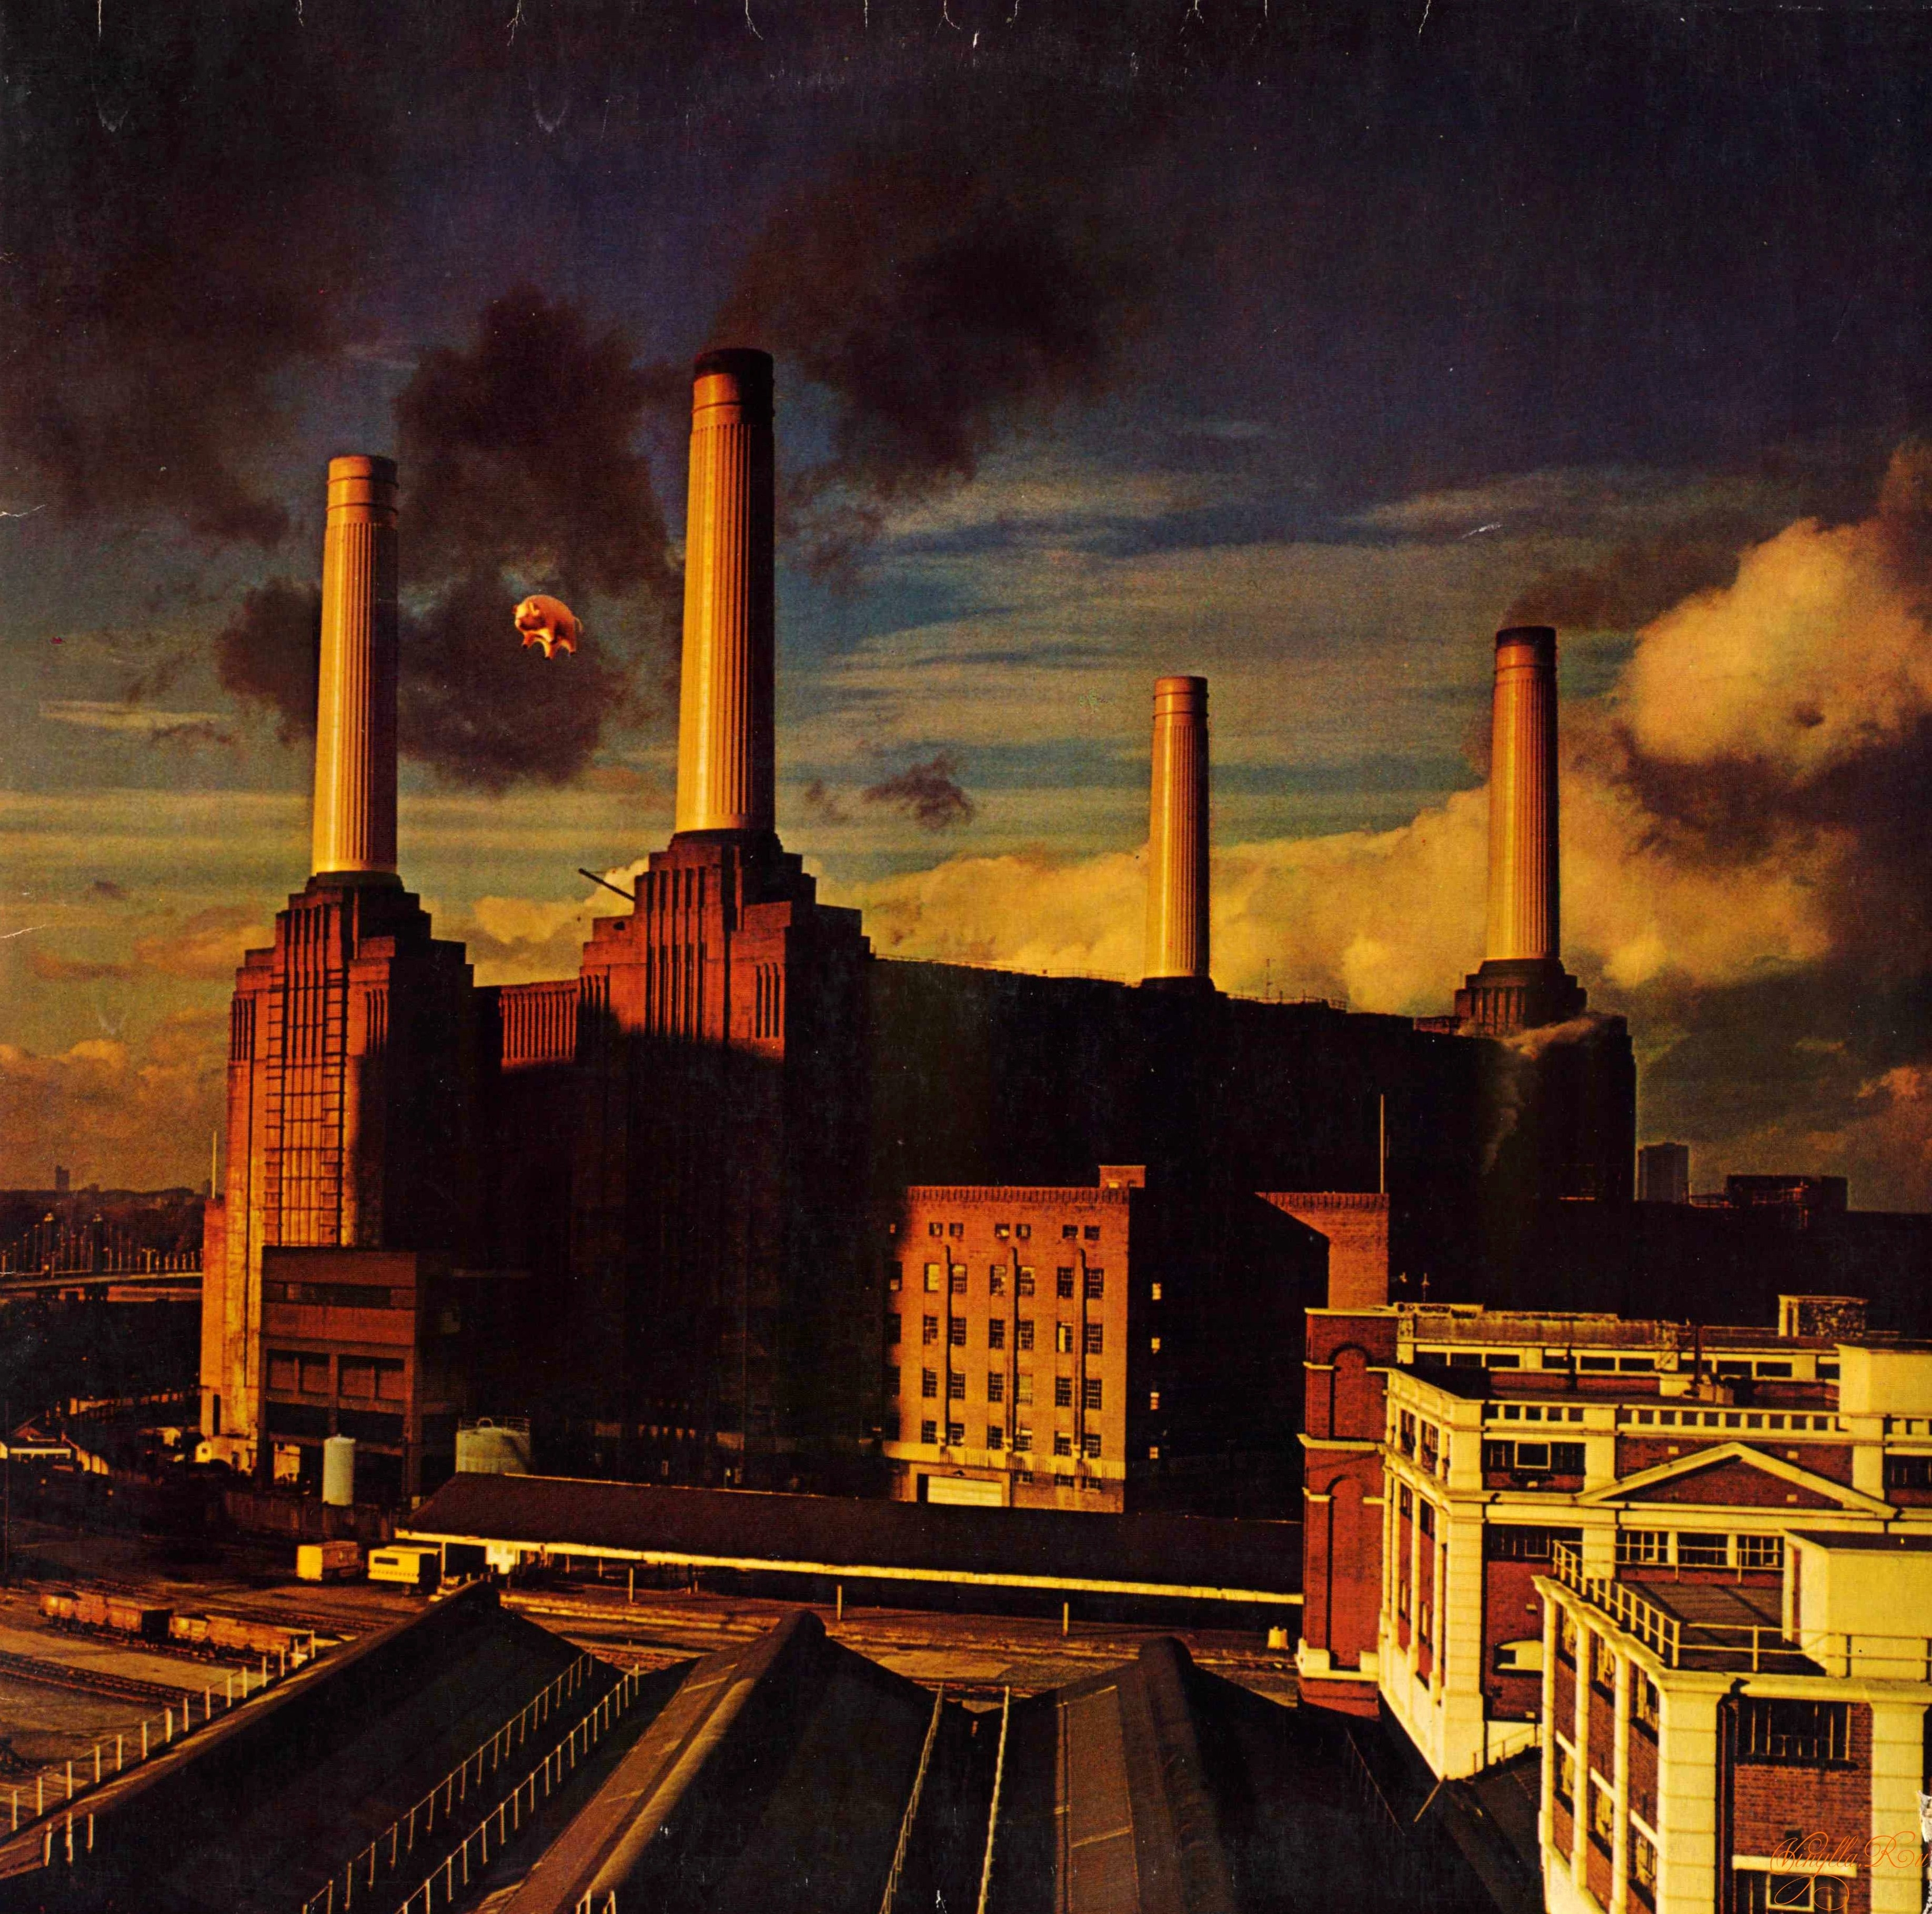 similiar pink floyd animals wallpaper keywords | android | pinterest